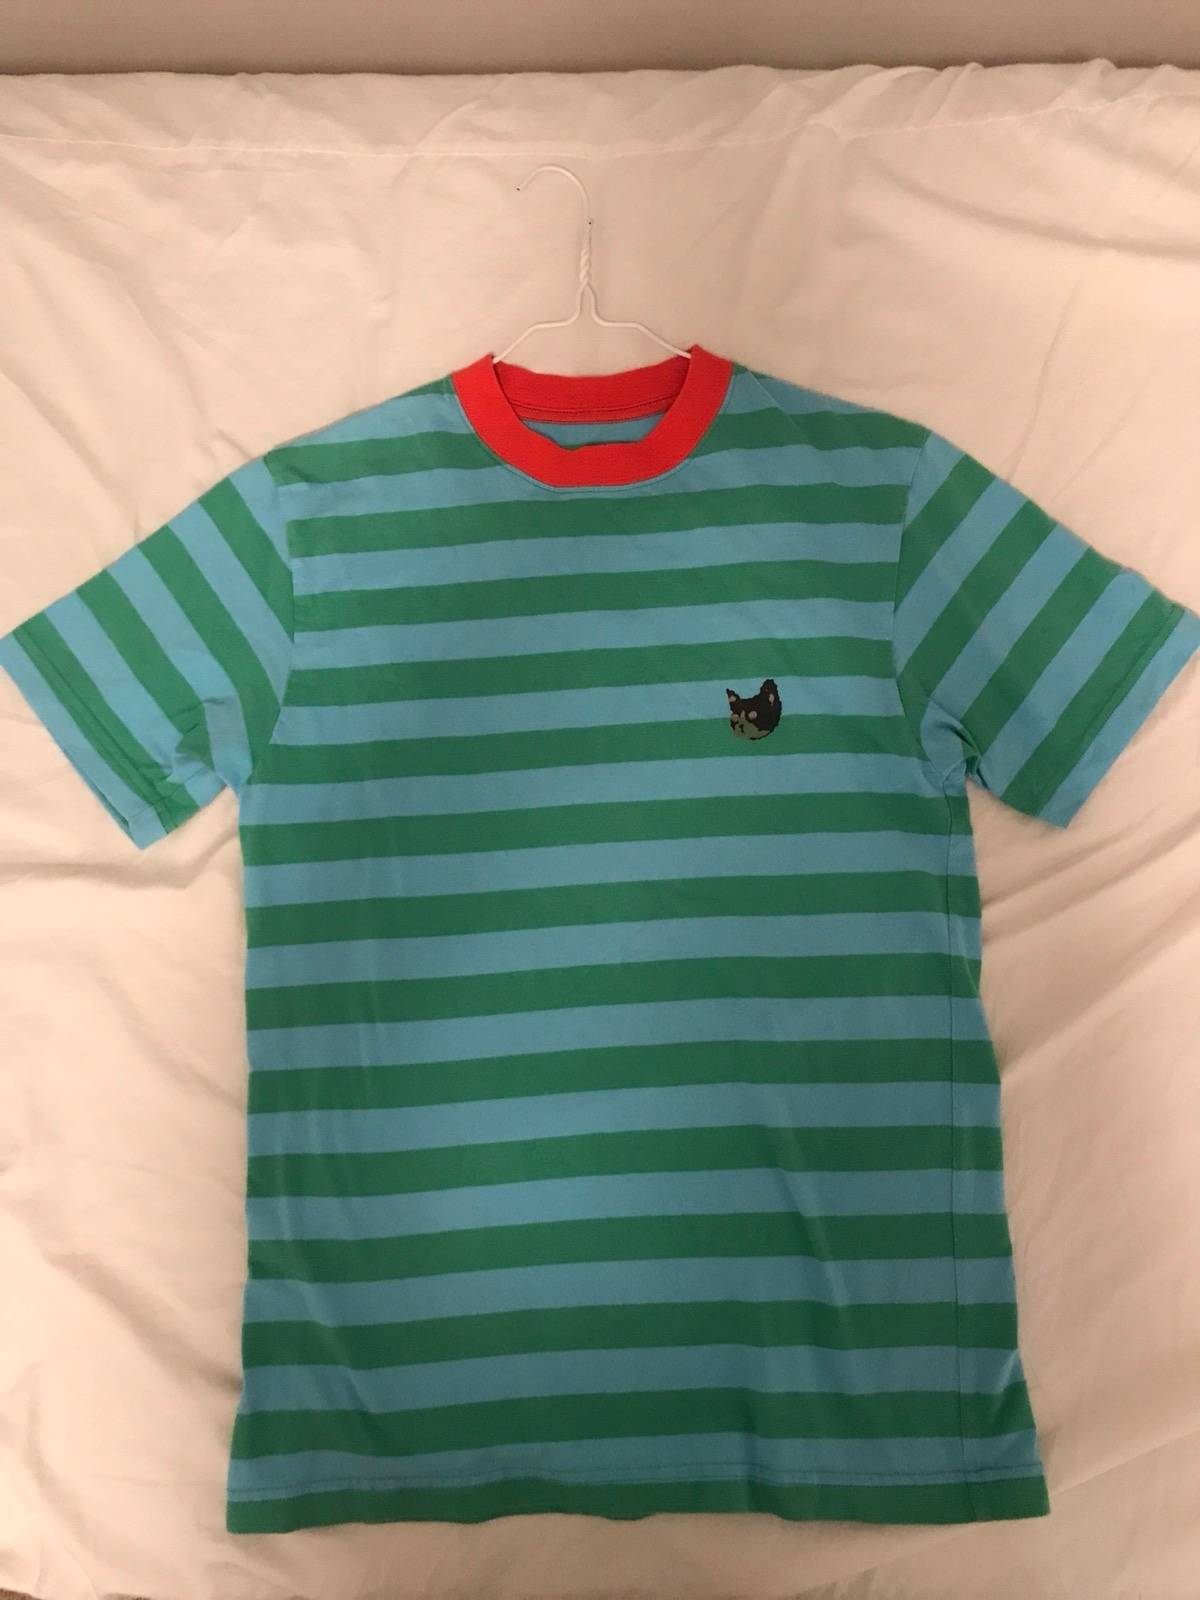 99354e82d9fb82 Golf Wang Uk Customer Message Me I Lost The Convo Lol Size s - Short Sleeve  T-Shirts for Sale - Grailed